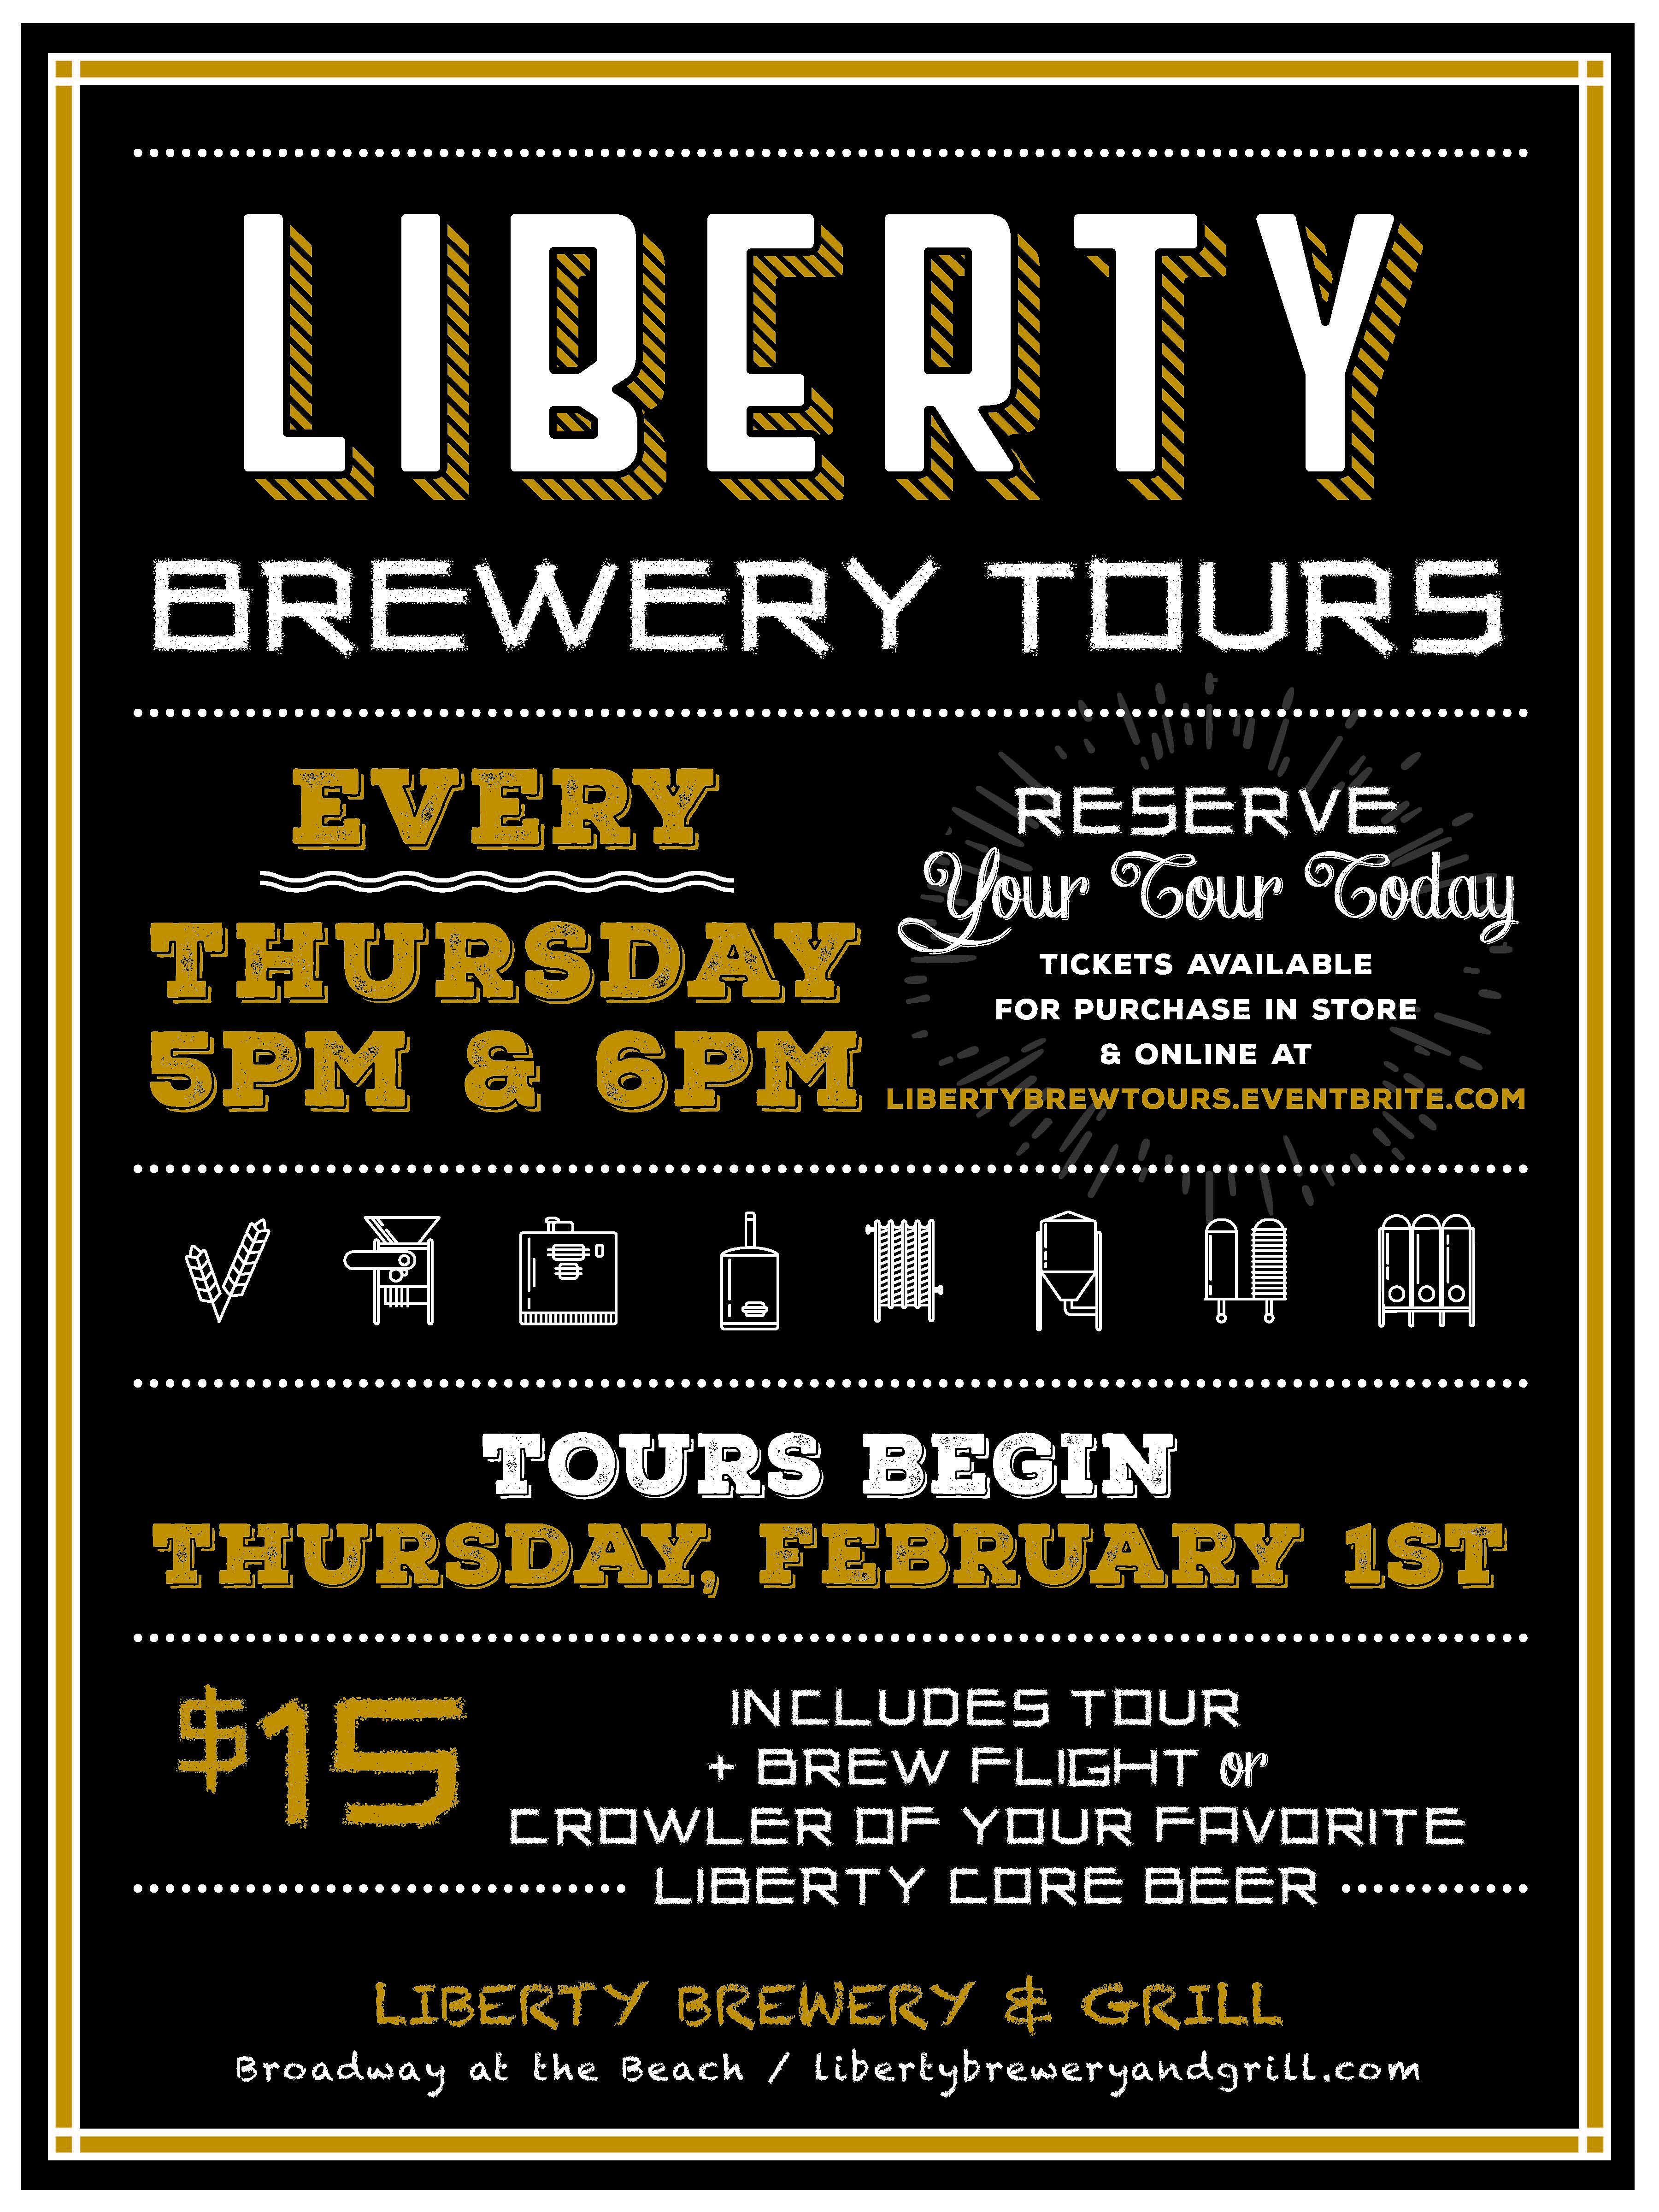 (300) Liberty Brewery MB Brewery Tours PosterB.jpg